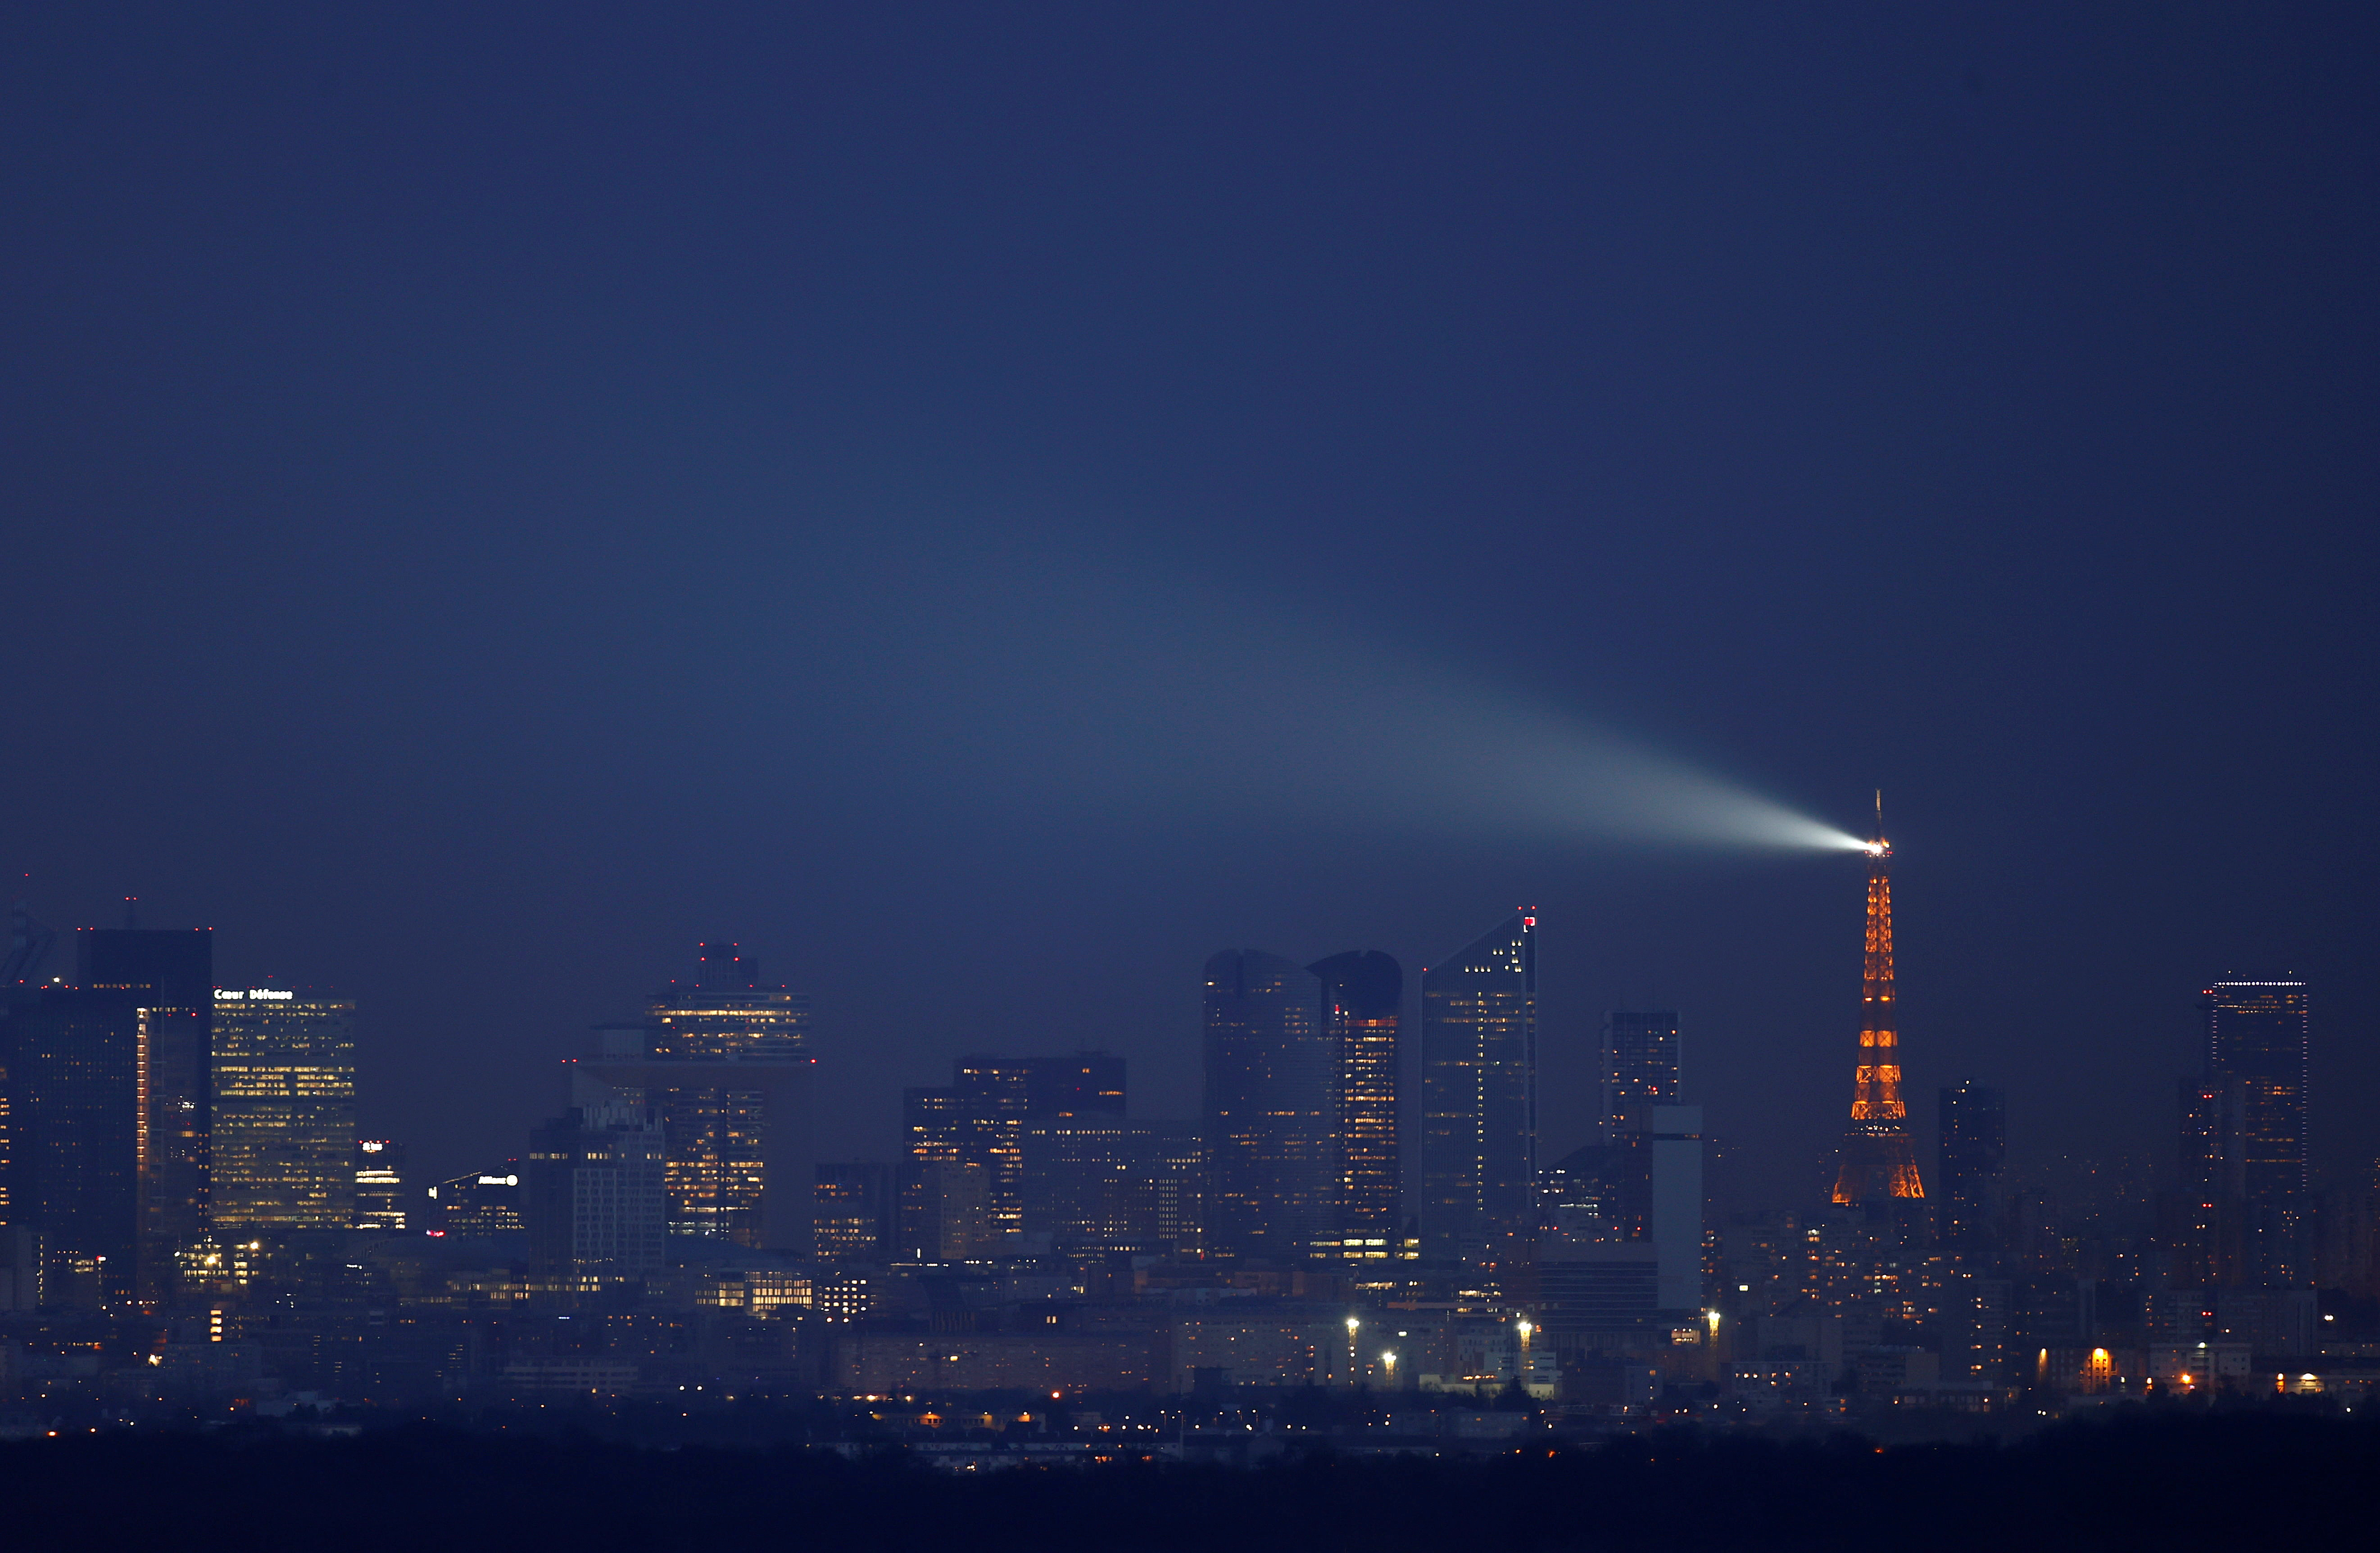 The Eiffel Tower lights the sky behind the financial district of La Defense during a nationwide curfew, from 6 p.m to 6 a.m, due to tighter measures against the spread of the coronavirus disease (COVID-19) near Paris, France, February 24, 2021.   REUTERS/Christian Hartmann